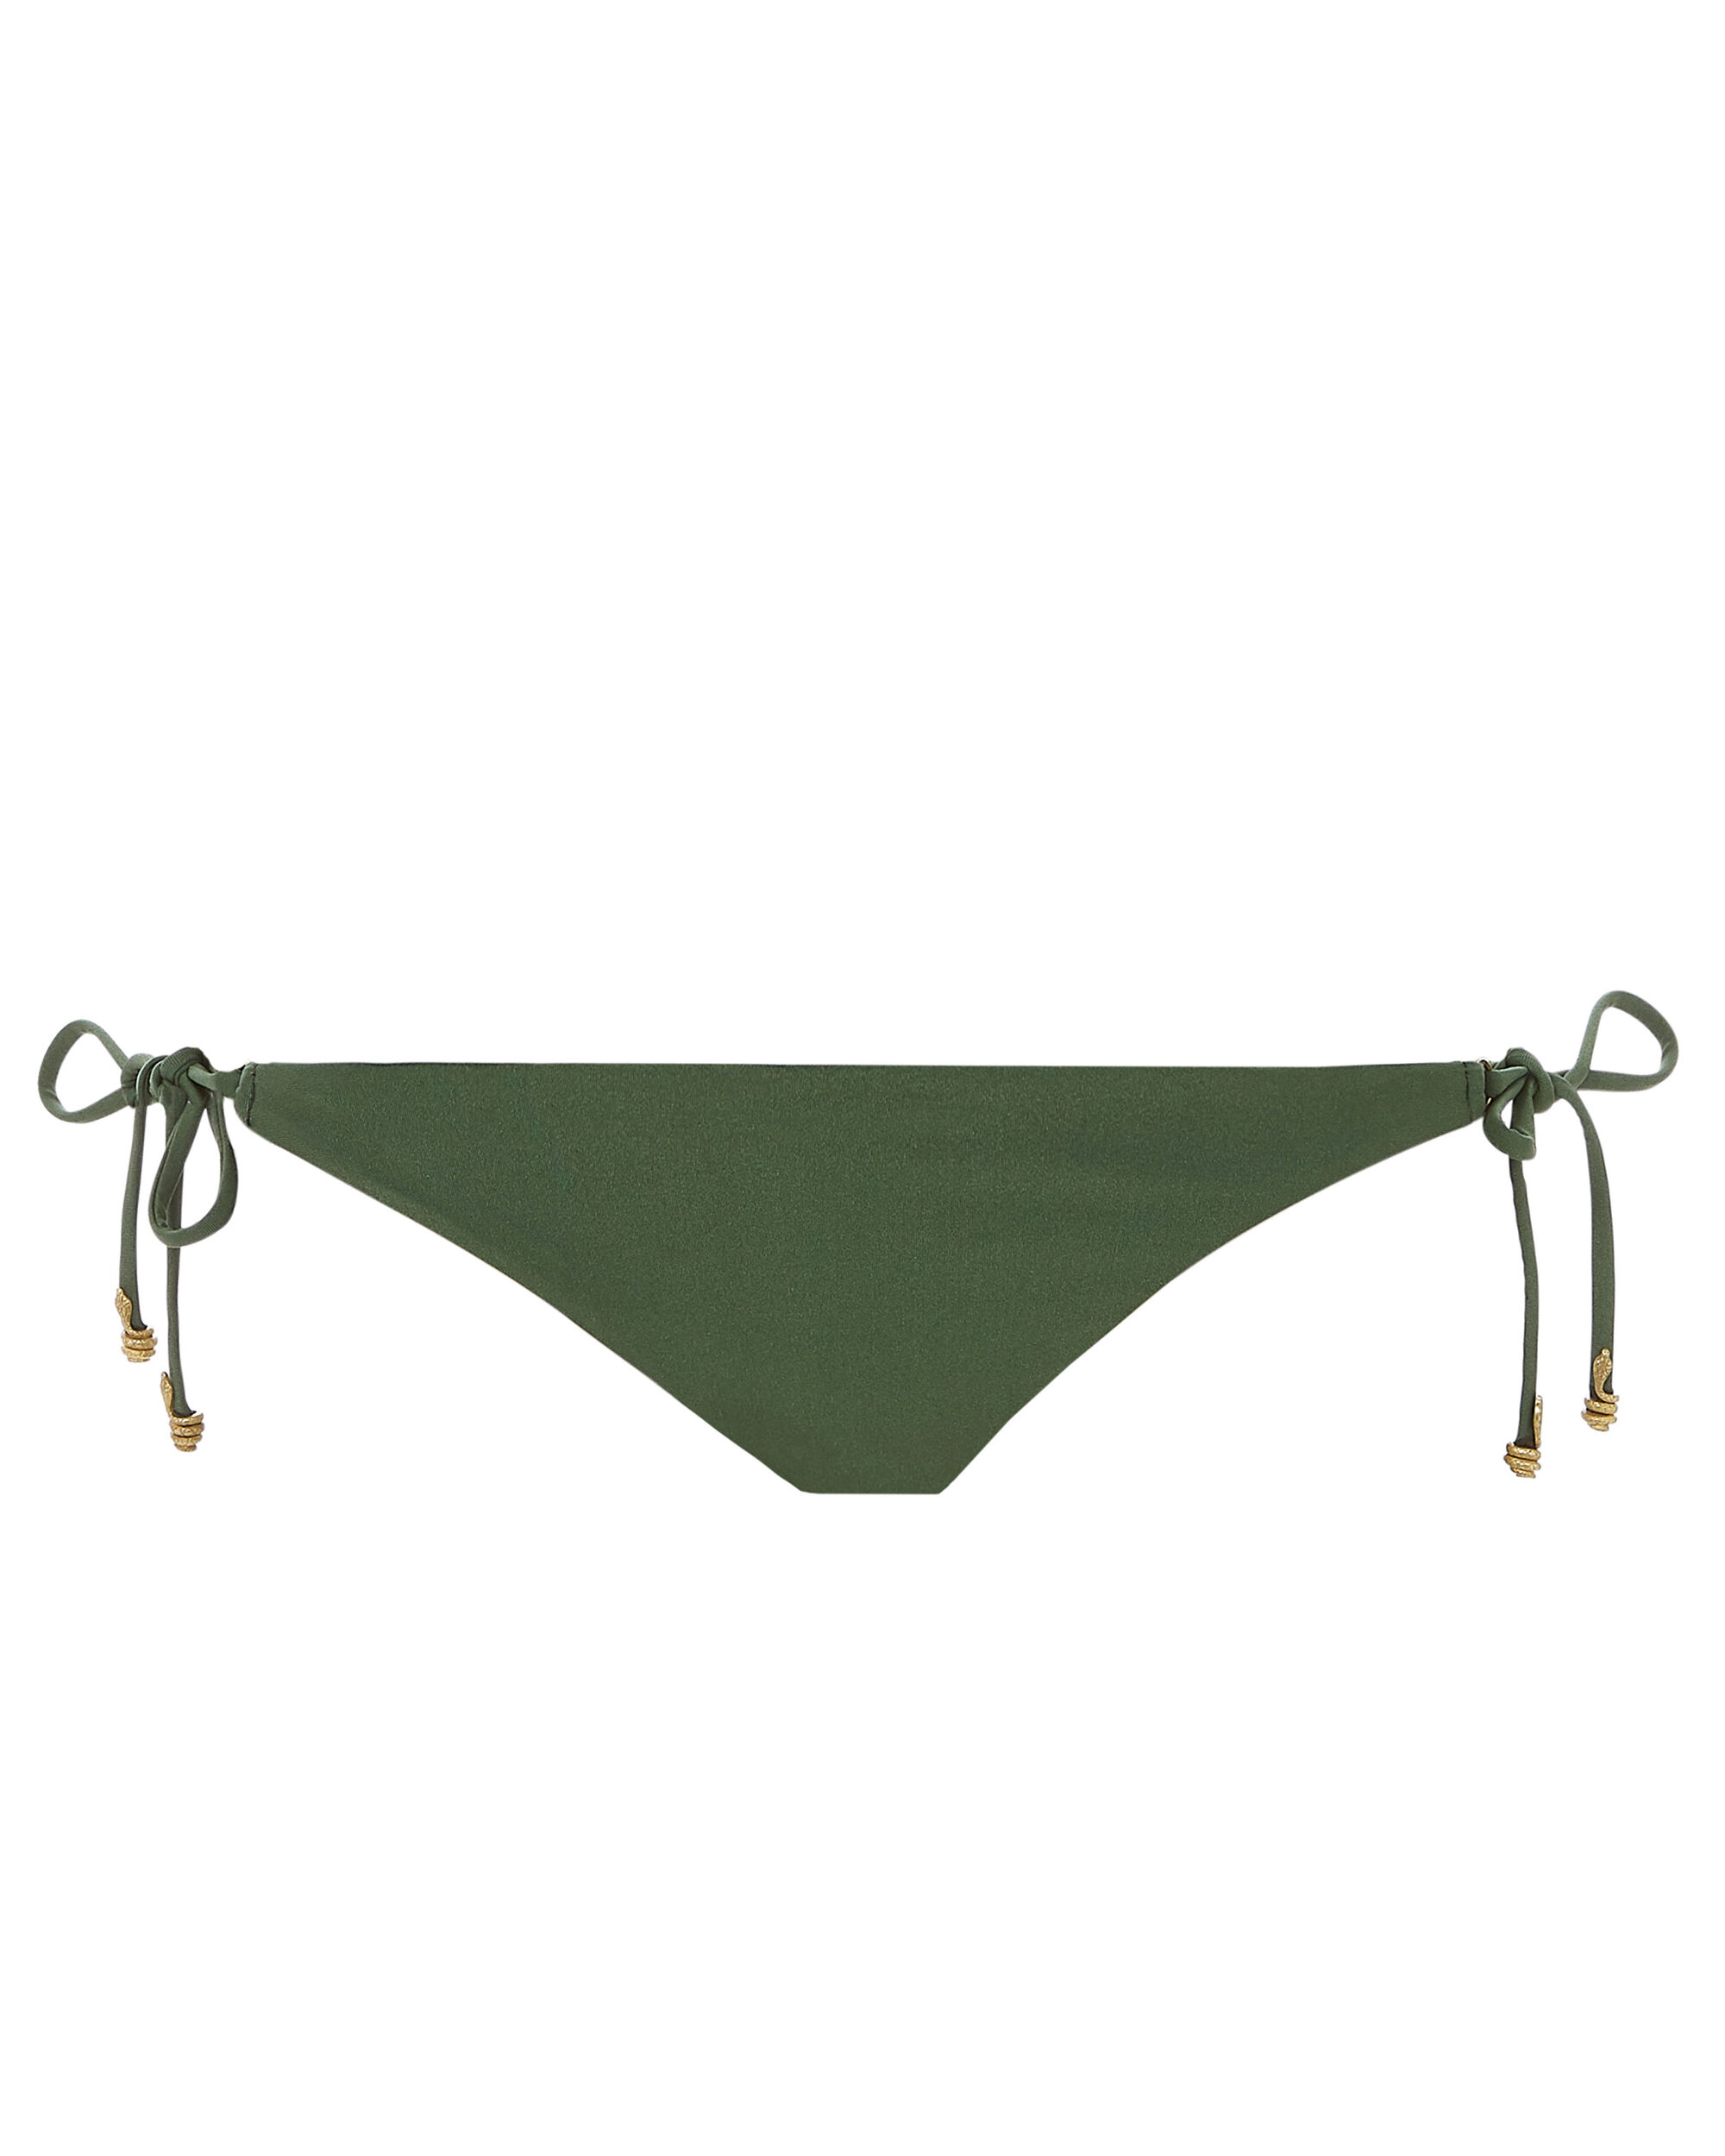 Morocco String Bikini Bottom, EMERALD, hi-res